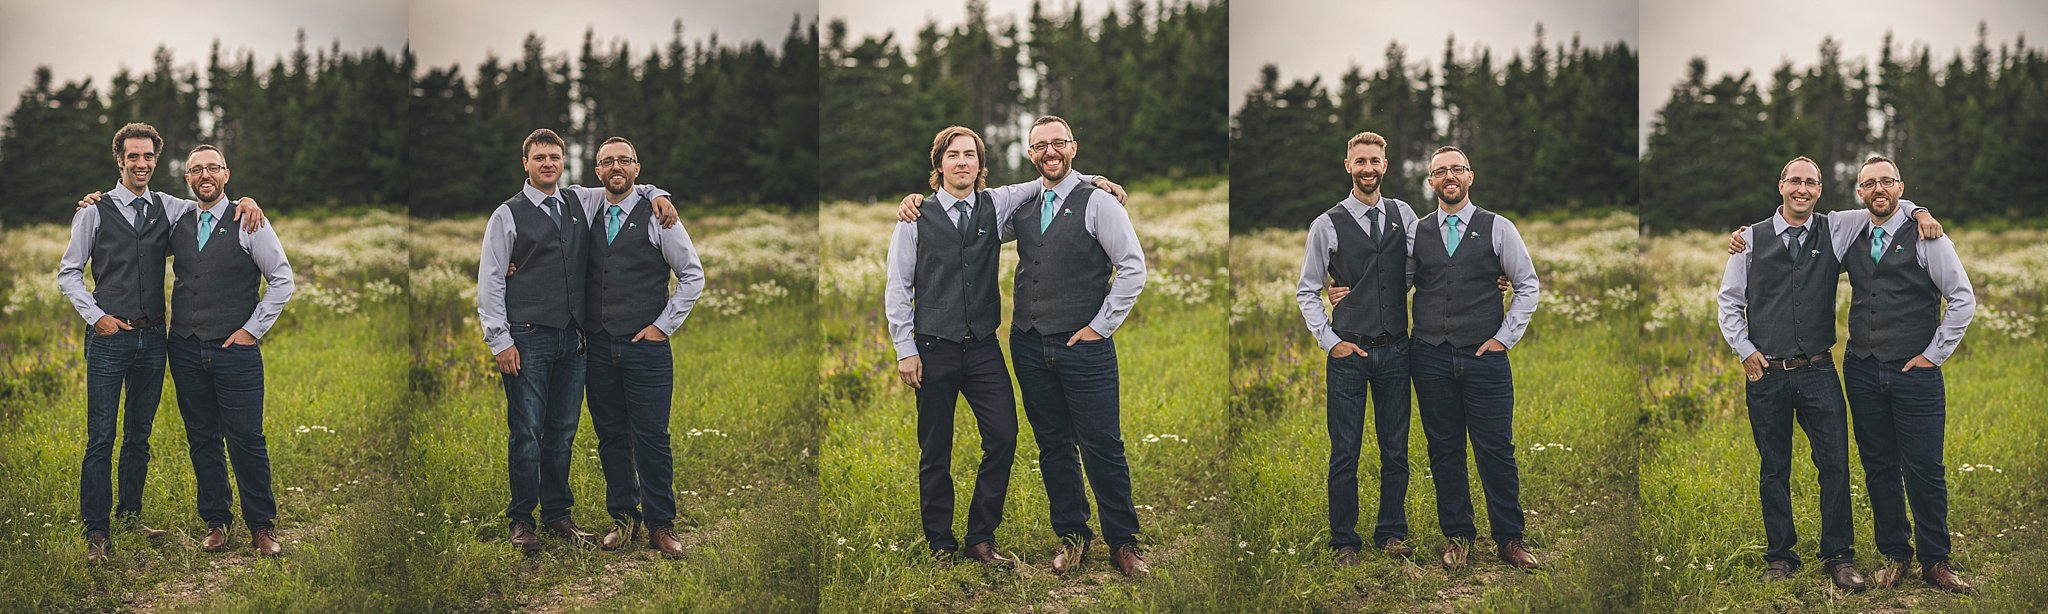 Groom and groomsmen during a St. John's, Newfoundland wedding held at Lester's Farm